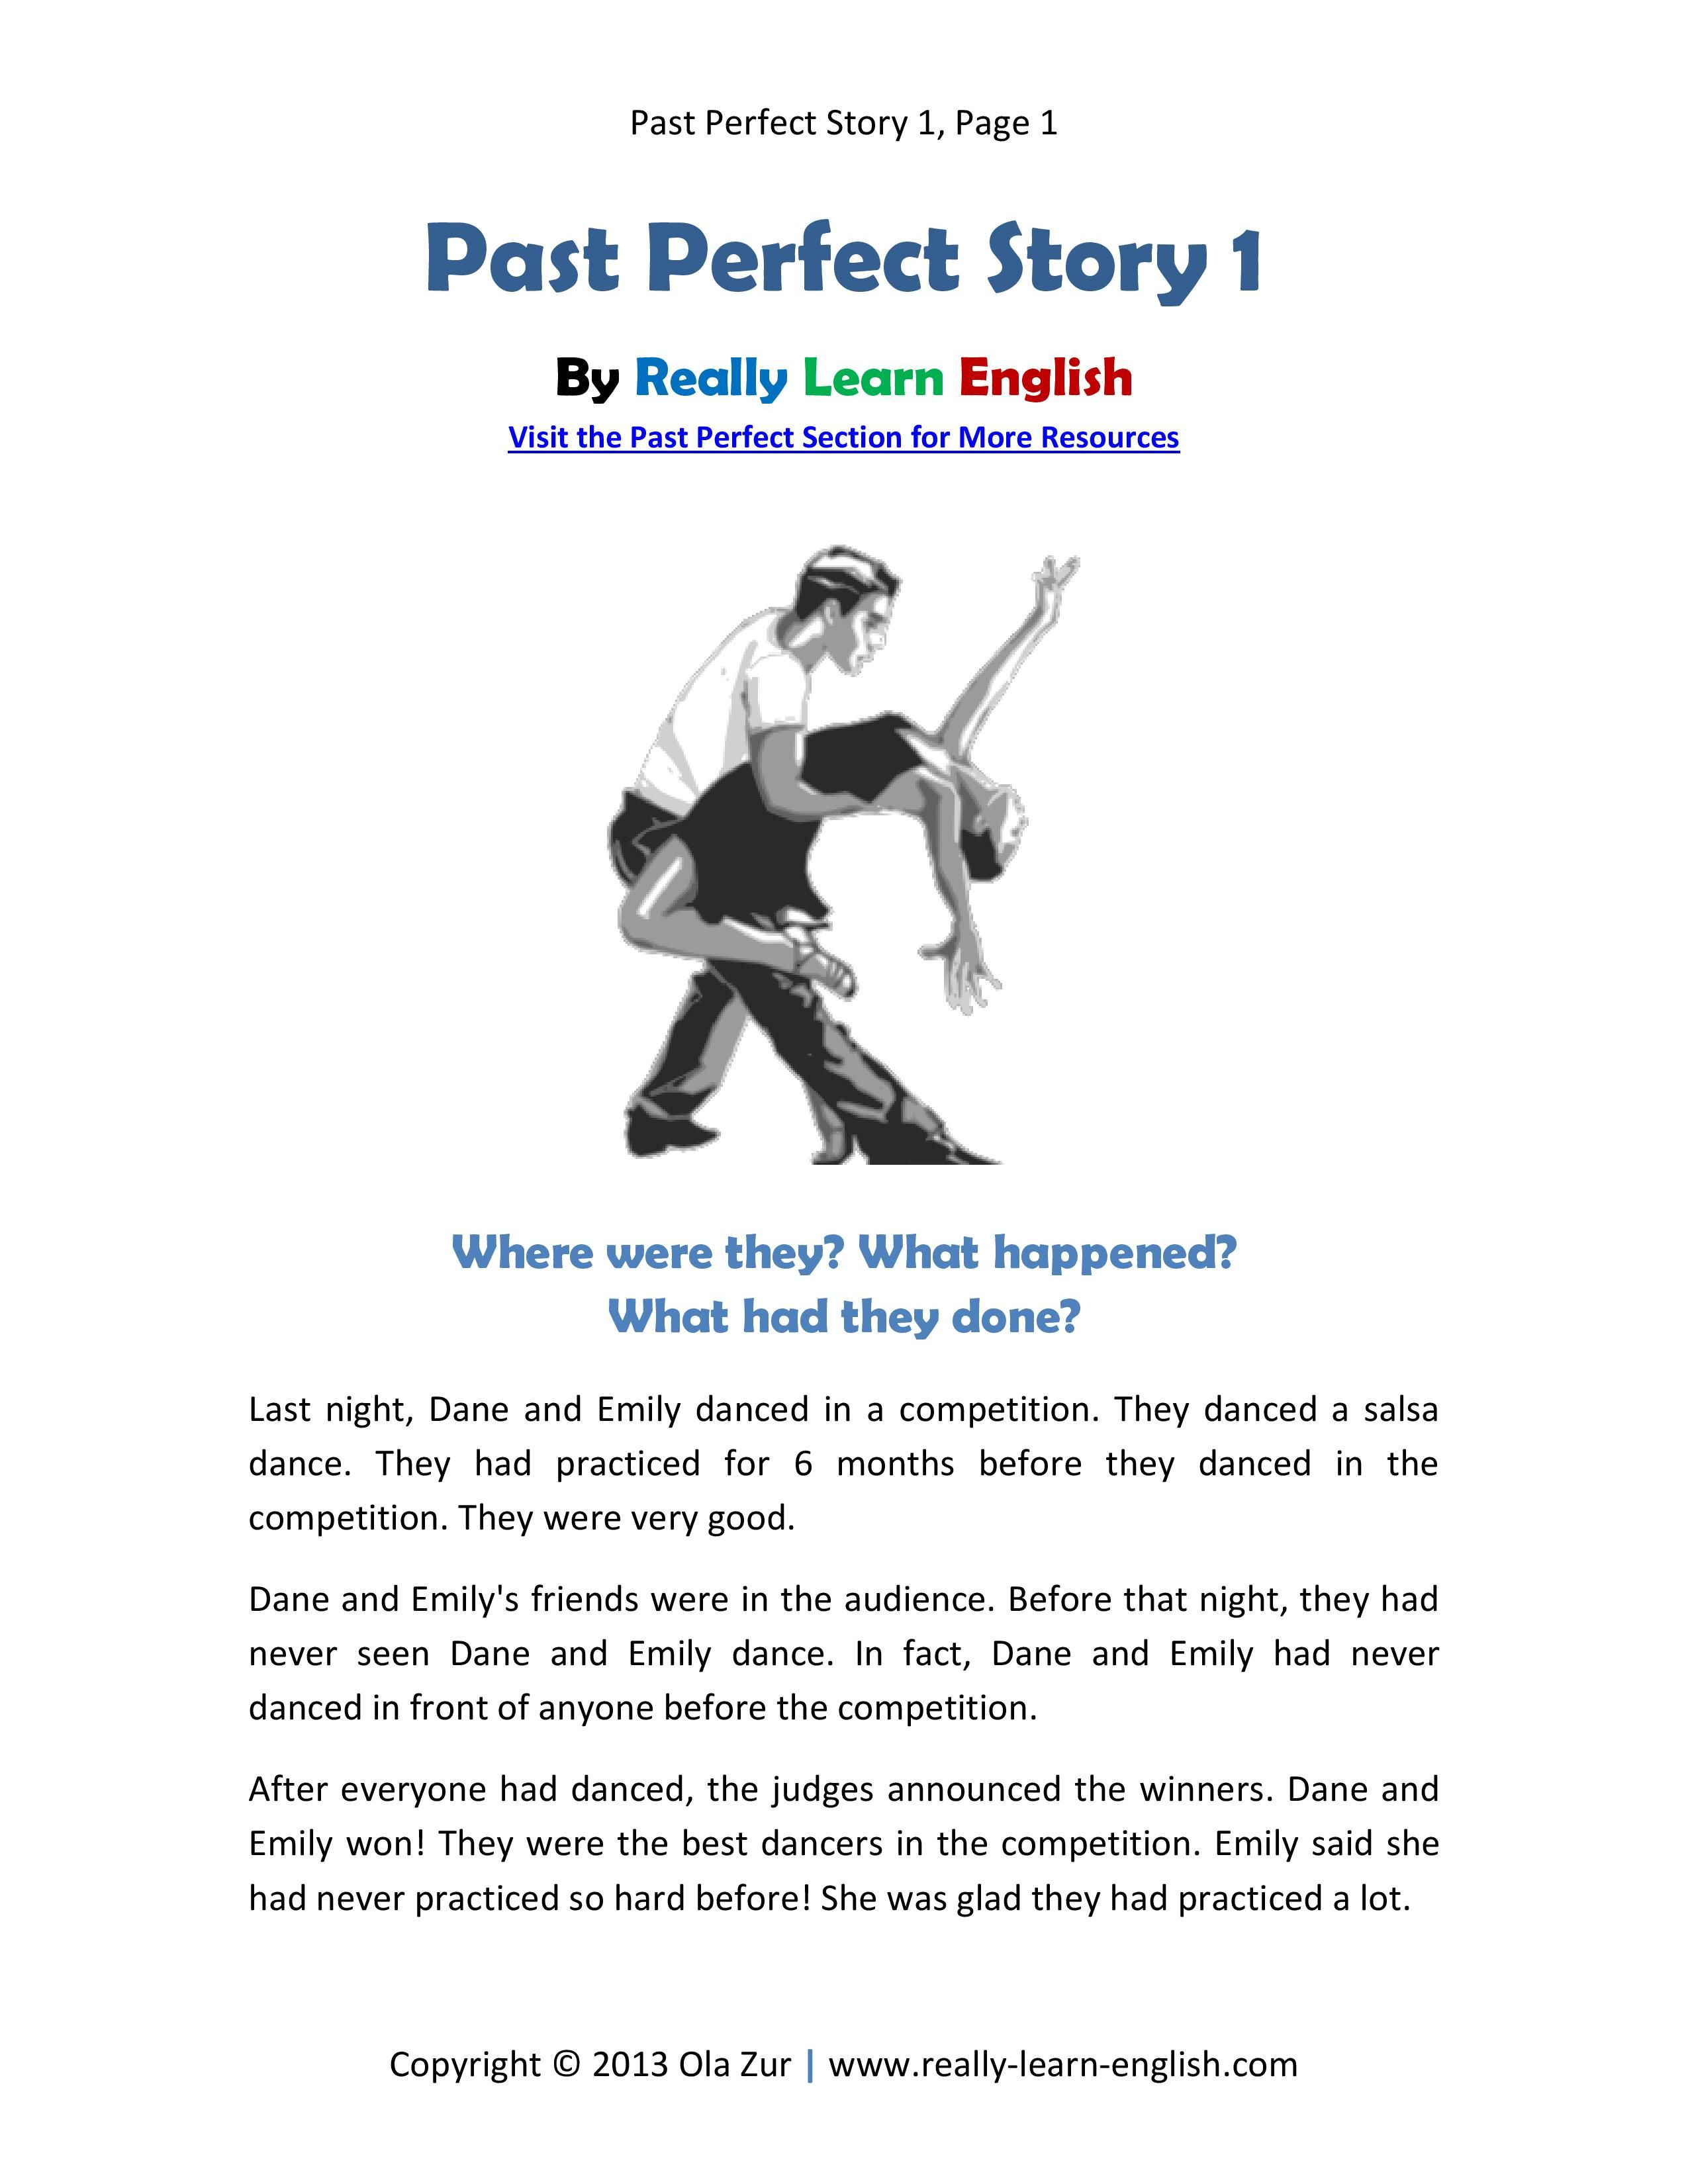 Free Printable Story And Exercises For The English Past Perfect Tense Just Click The Link And Download The Pdf Fil Learn English Perfect Tense English Reading